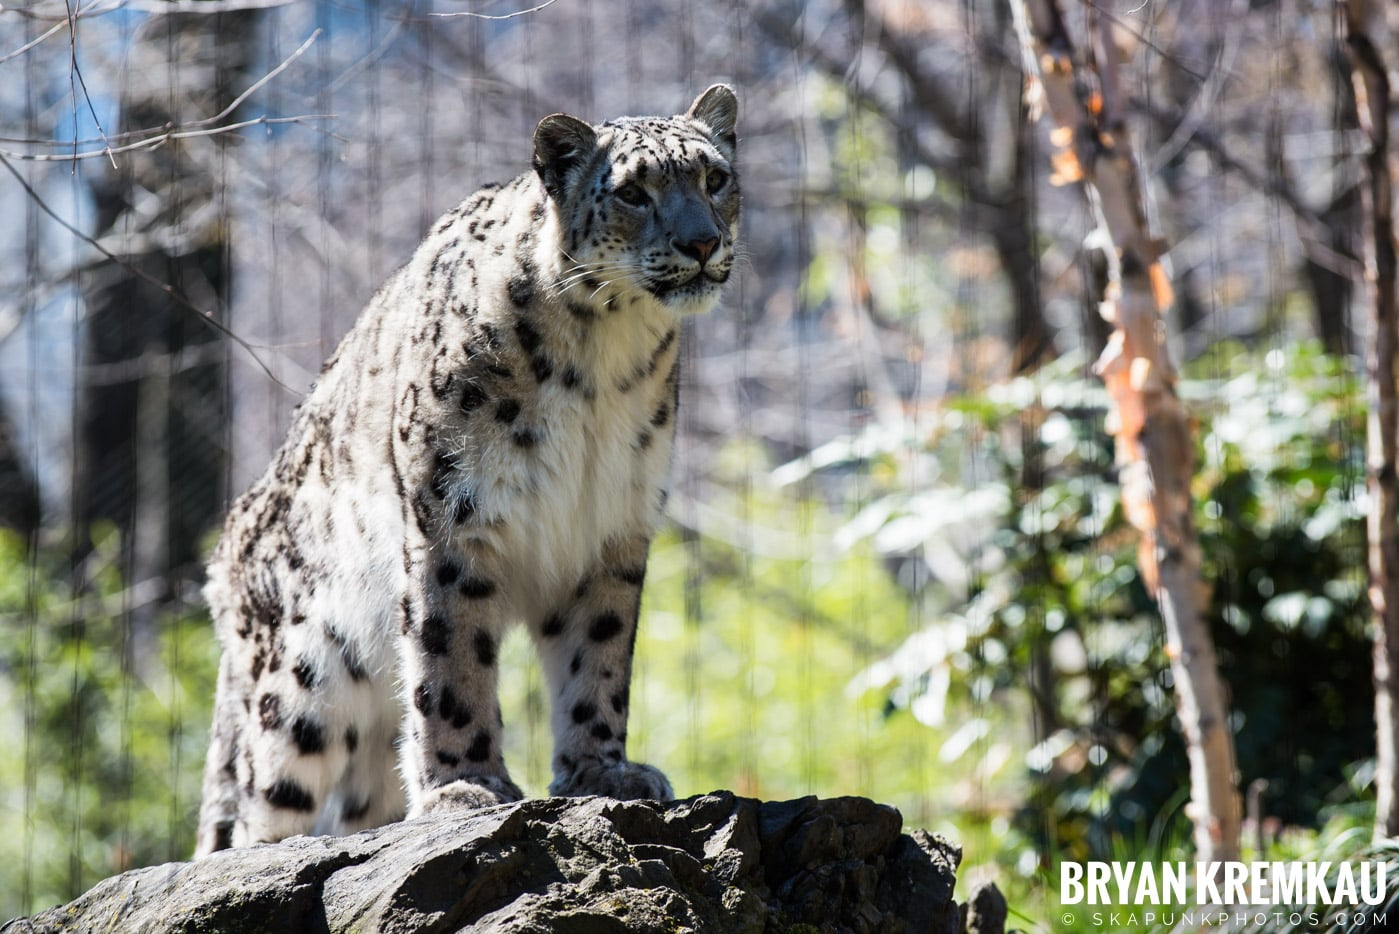 Central Park Zoo @ Central Park, NYC - 4.9.17 (7)